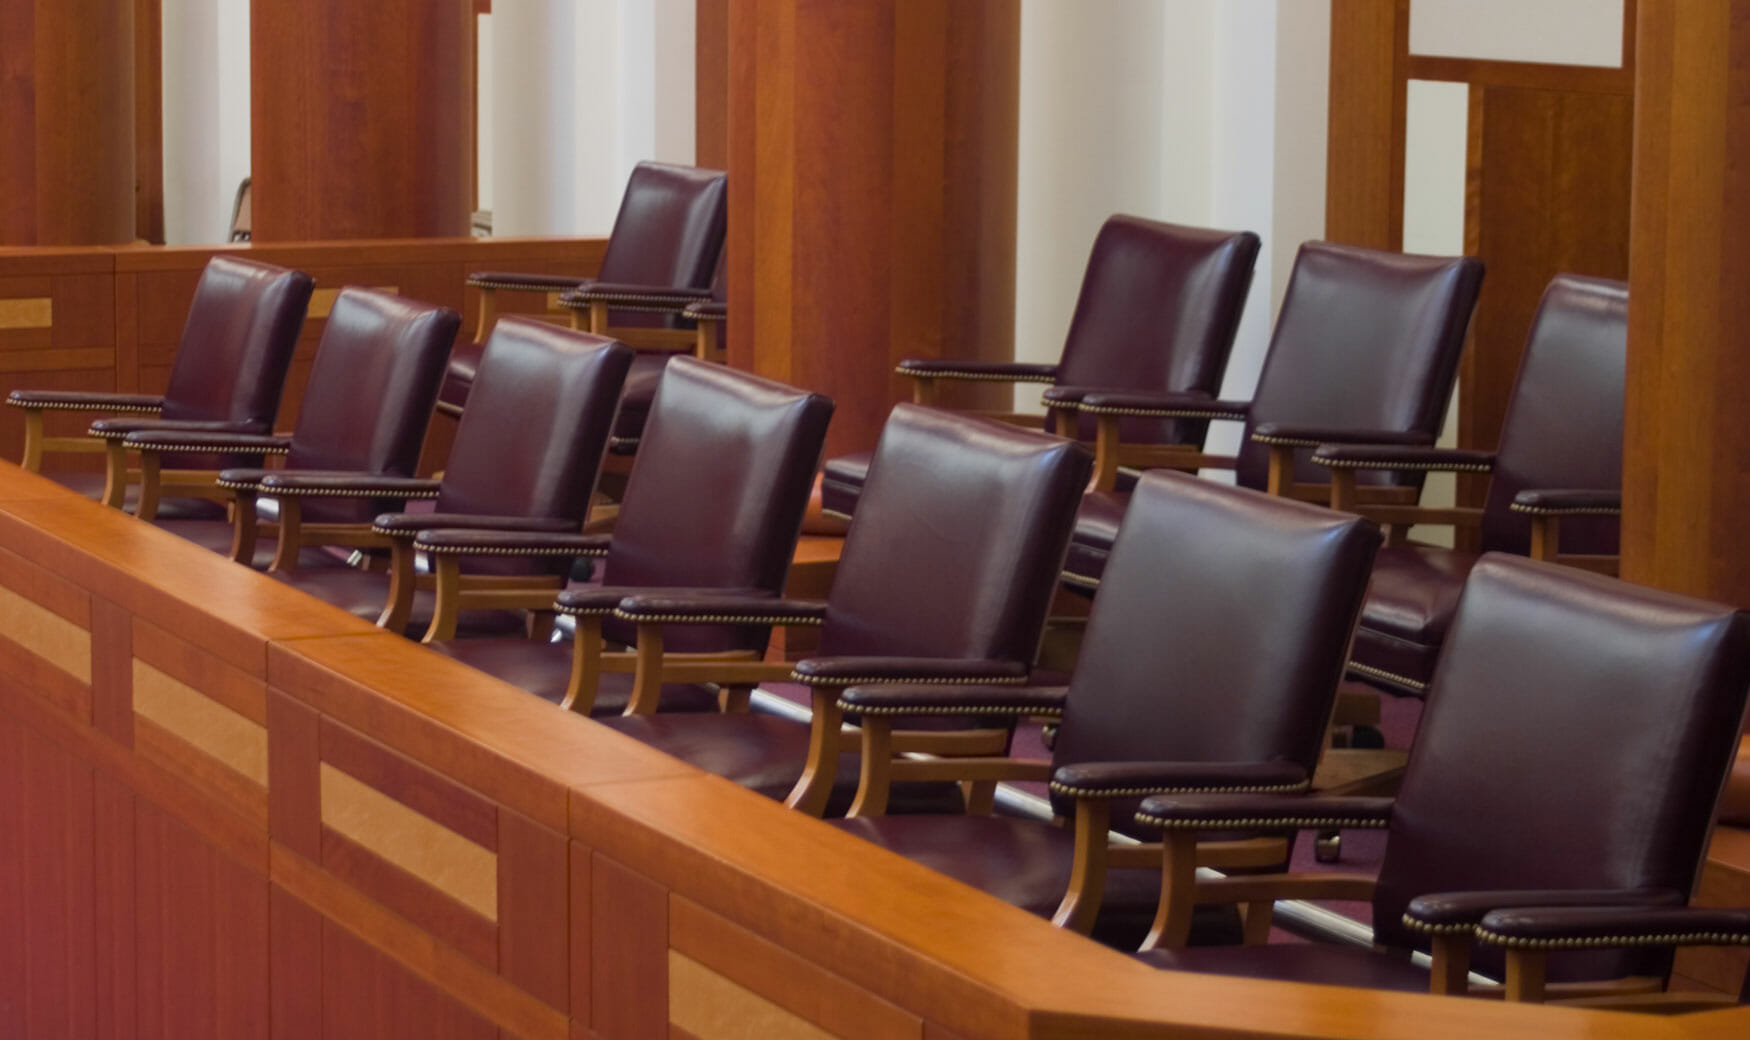 Media item displaying NJ Supreme Court Rules that NJ Uniform Securities Law Does Not Bar Investment Adviser From Seeking Damages Over Verbal Job Offer